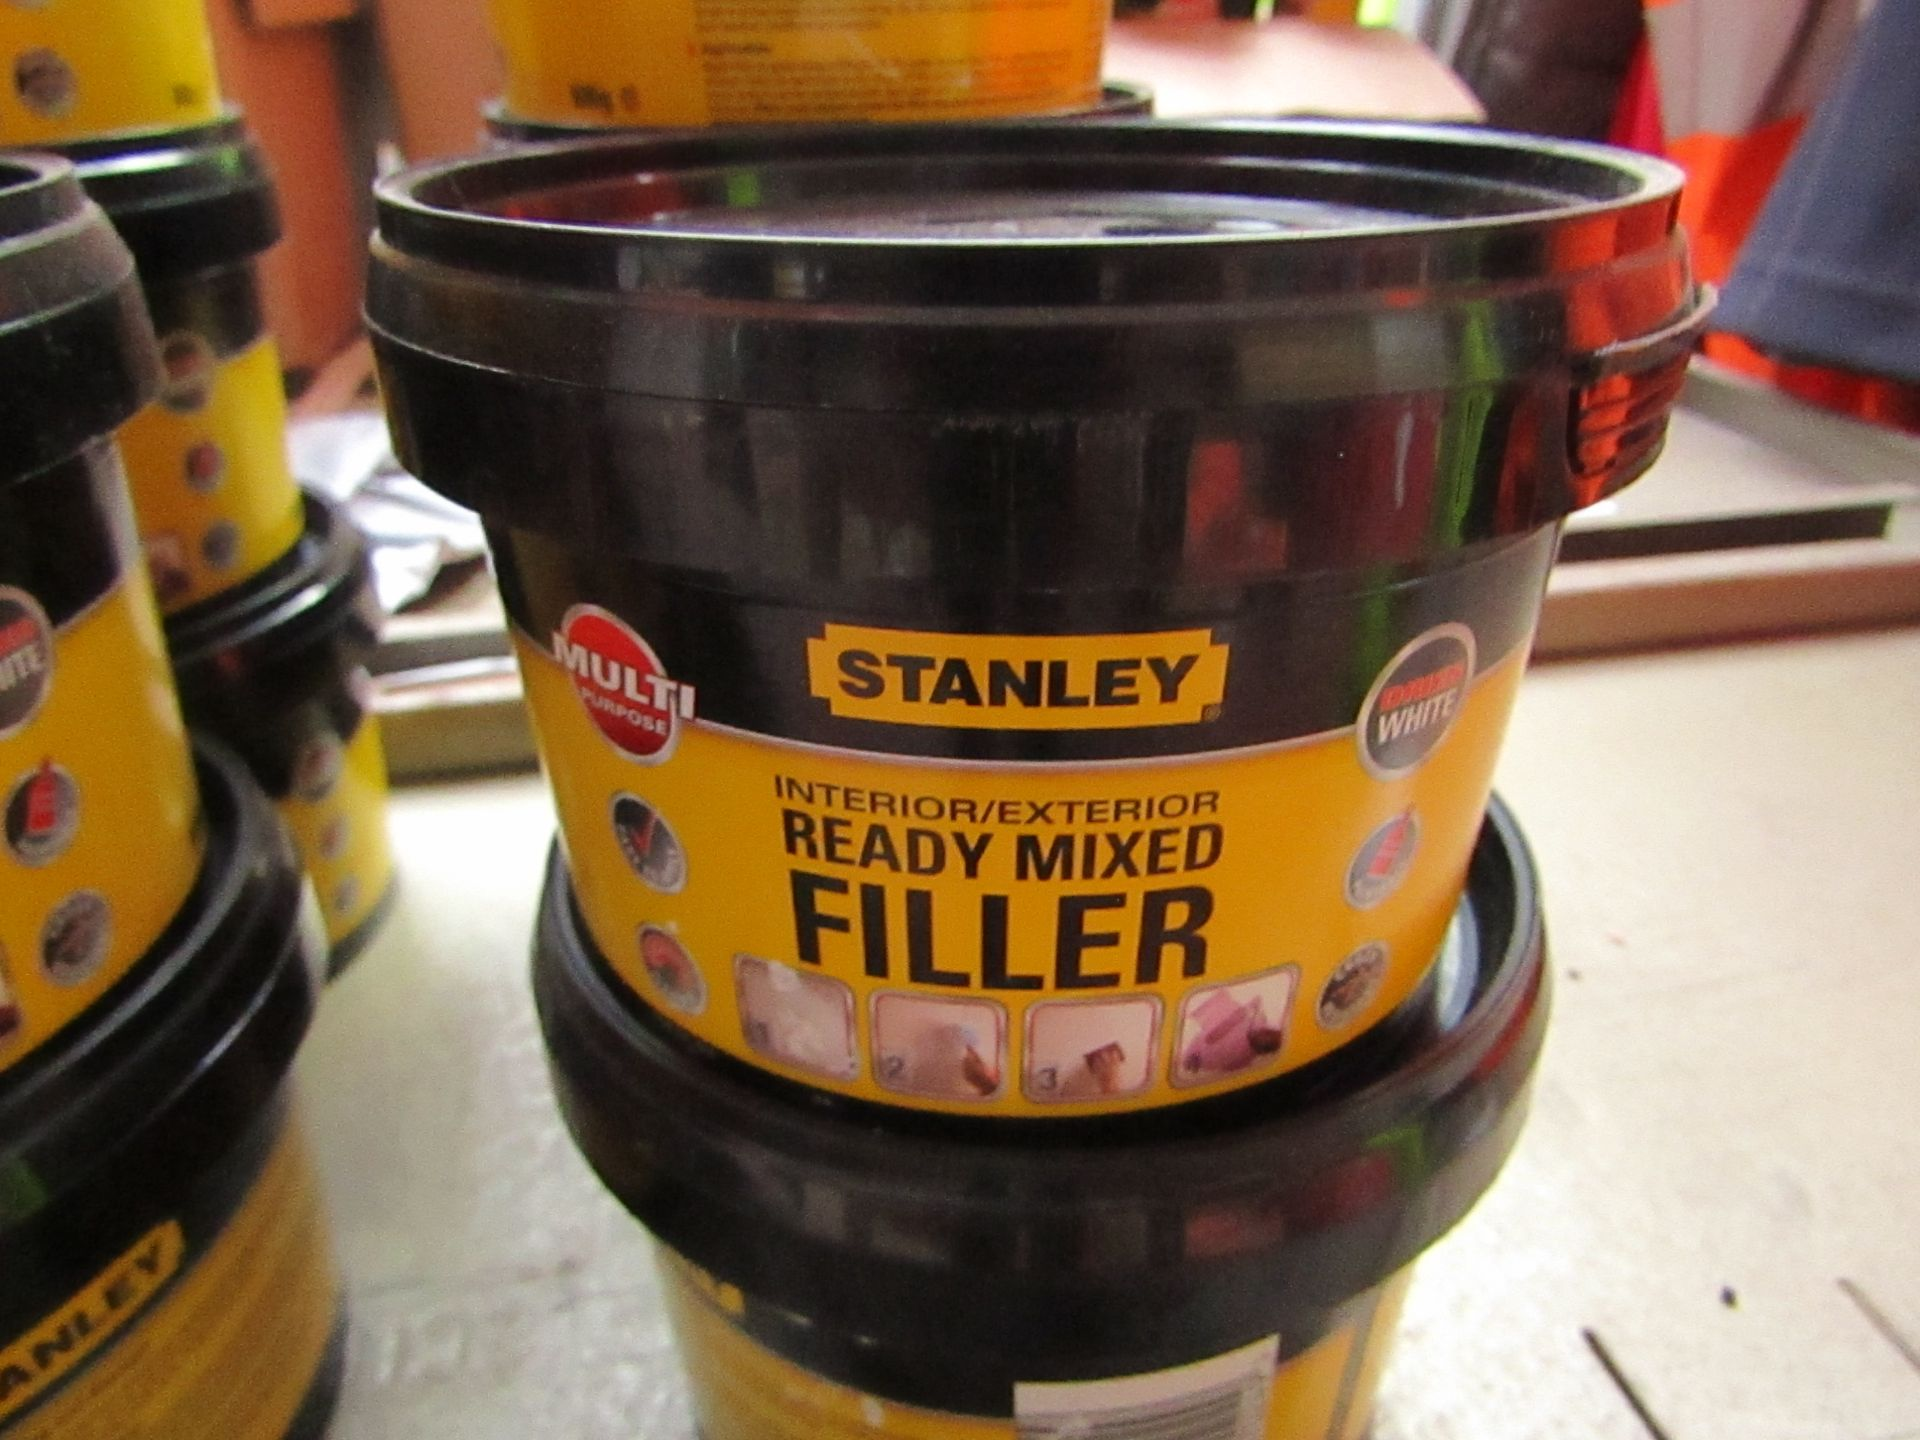 Lot 57 - 5x 600g tubs of Stanley Multi Purpose ready Mixed Interor and Exterior filler, new